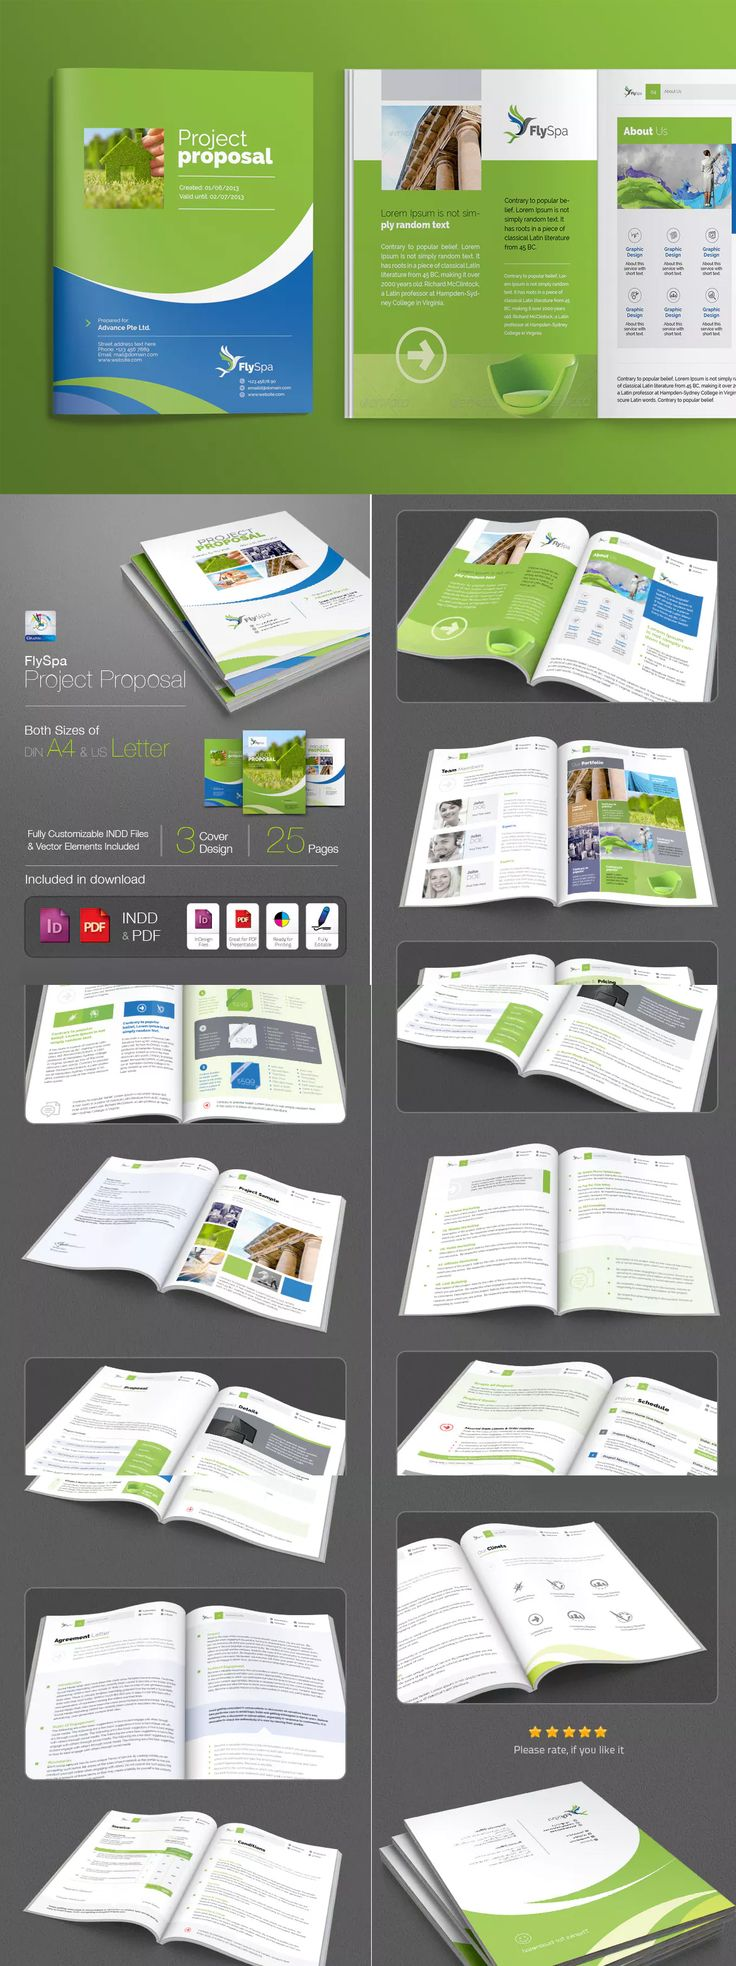 proposal report template%0A FlySpa   Project Proposal Brochure Template InDesign INDD